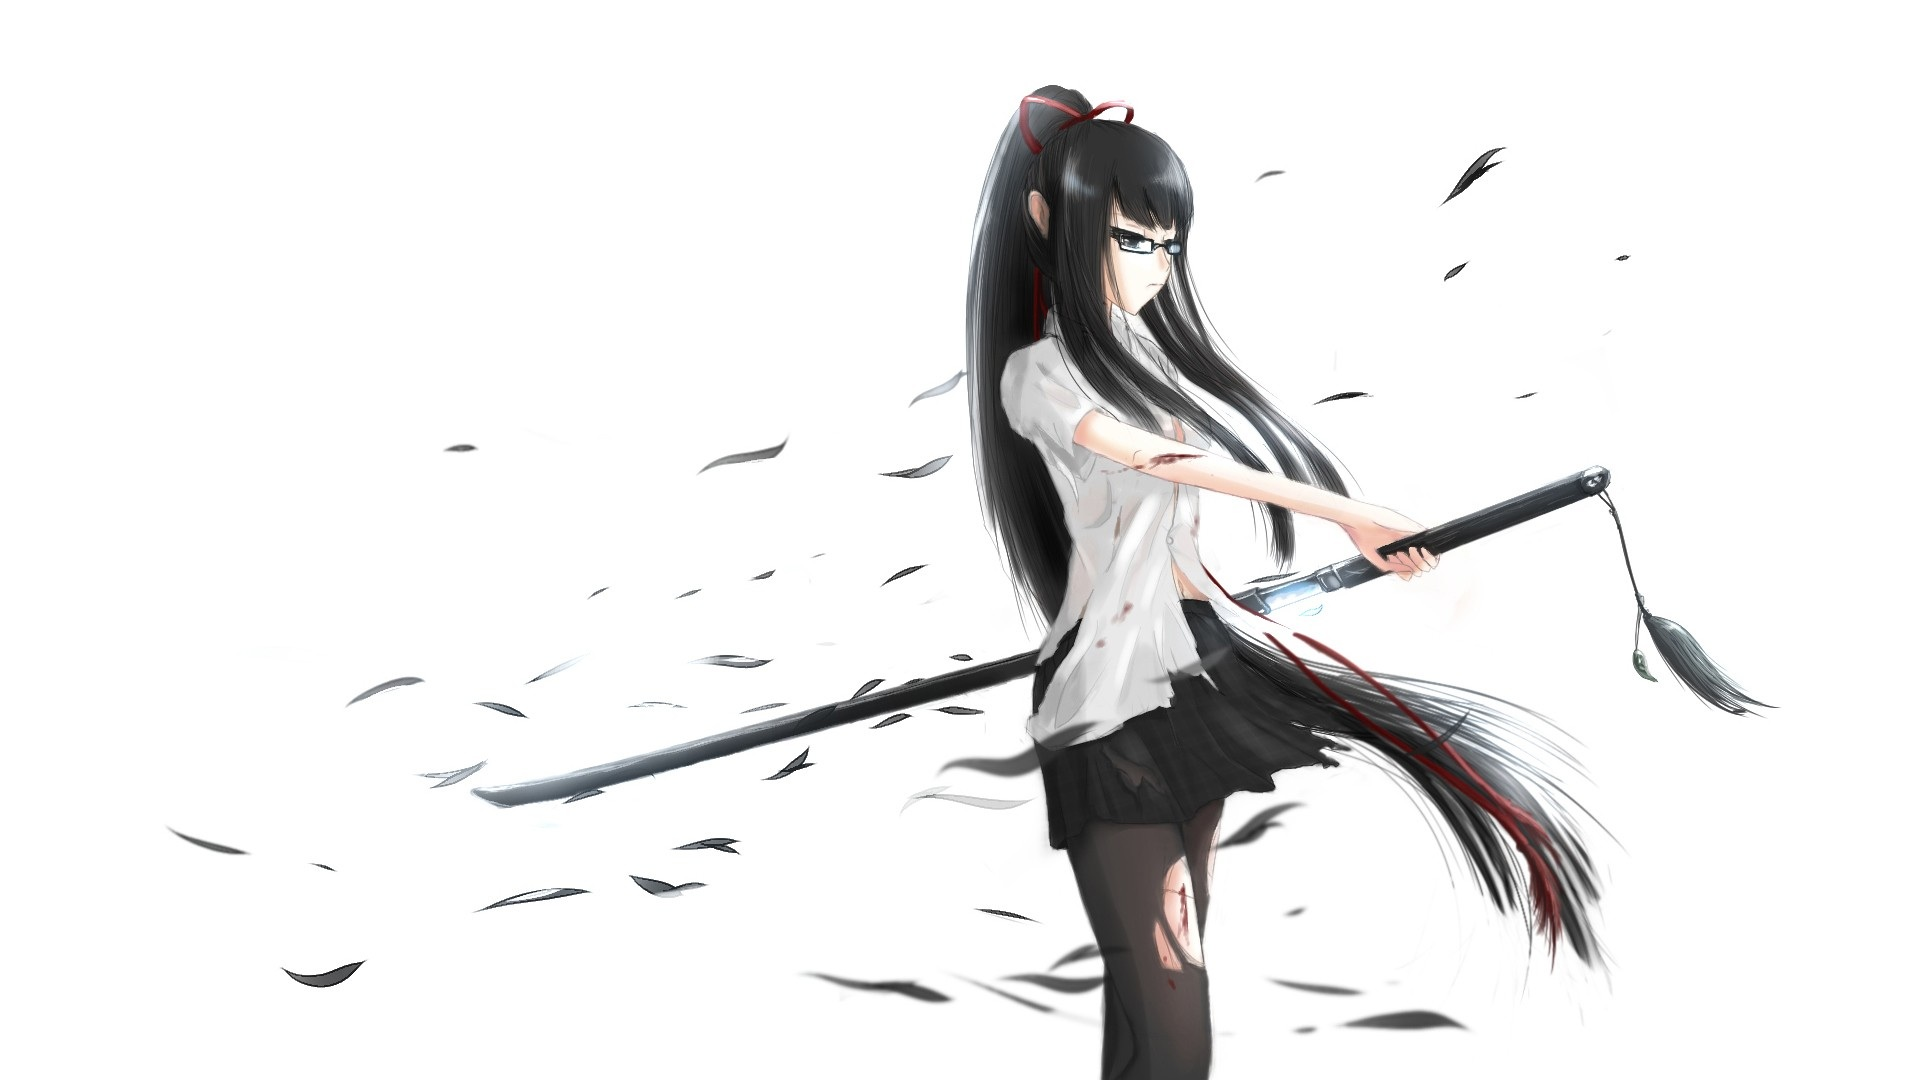 1920x1080 anime girl with katana sword desktop pc and mac wallpaper